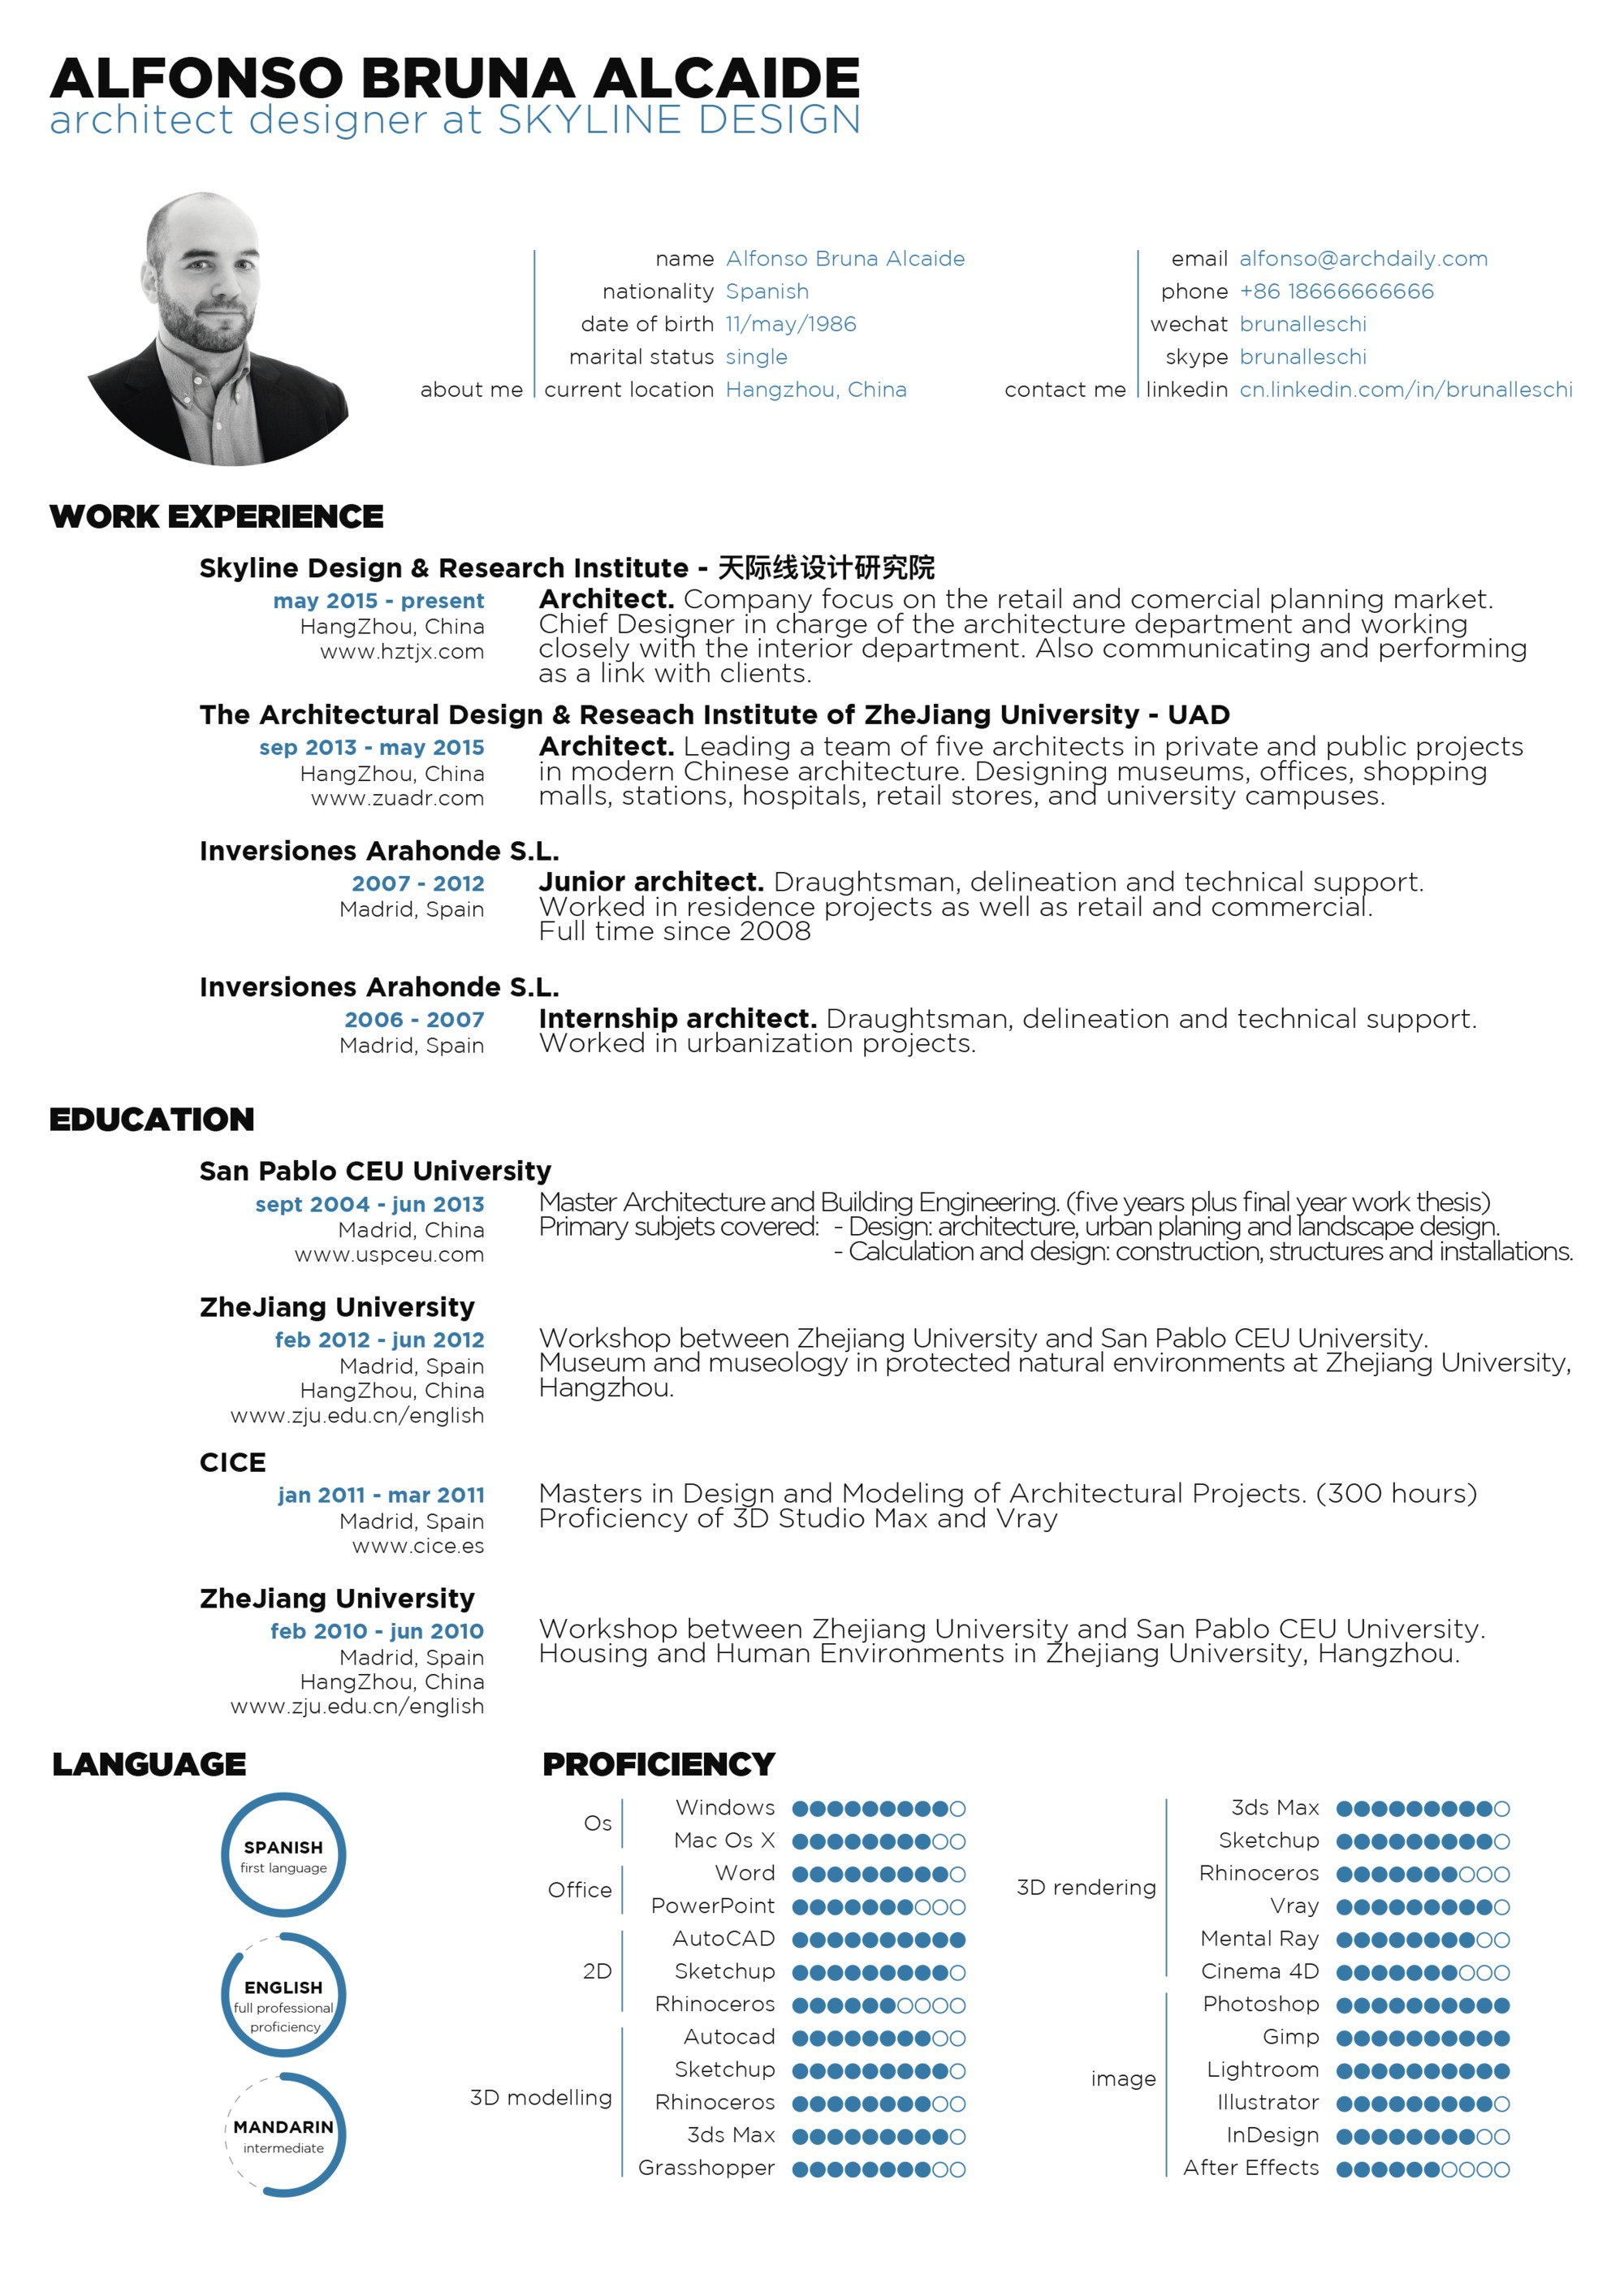 architect resumes - jianbochen.com